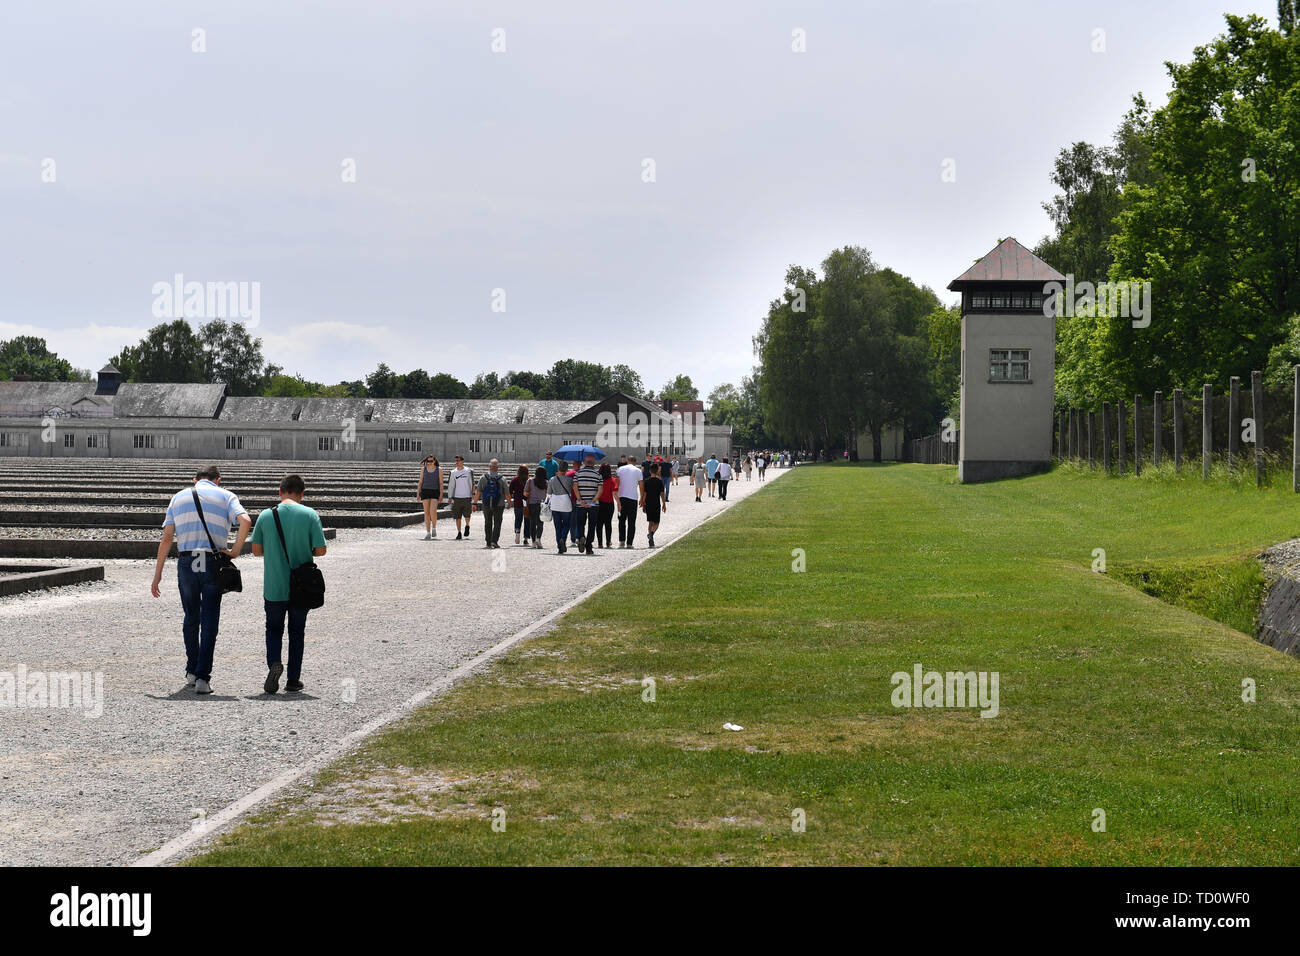 Dachau, Deutschland. 10th June, 2019. Visitors in the Gedenkstaette Concentration Camp Dachau- Gedenkstaette, 1933, 1945, 3, antisewithism, exterminate, extermination, Bavaria, Dachau, deportation, German, German history, Germany, third, Europe, fascism, fascists, fascist, commemoration, memorial, history, Jew, concentration camp, concentration camp, memorial, Nazism, Nazi, Nazis, Nazi, Reich, crime, past, annihilation, extermination camp | usage worldwide Credit: dpa/Alamy Live News - Stock Image